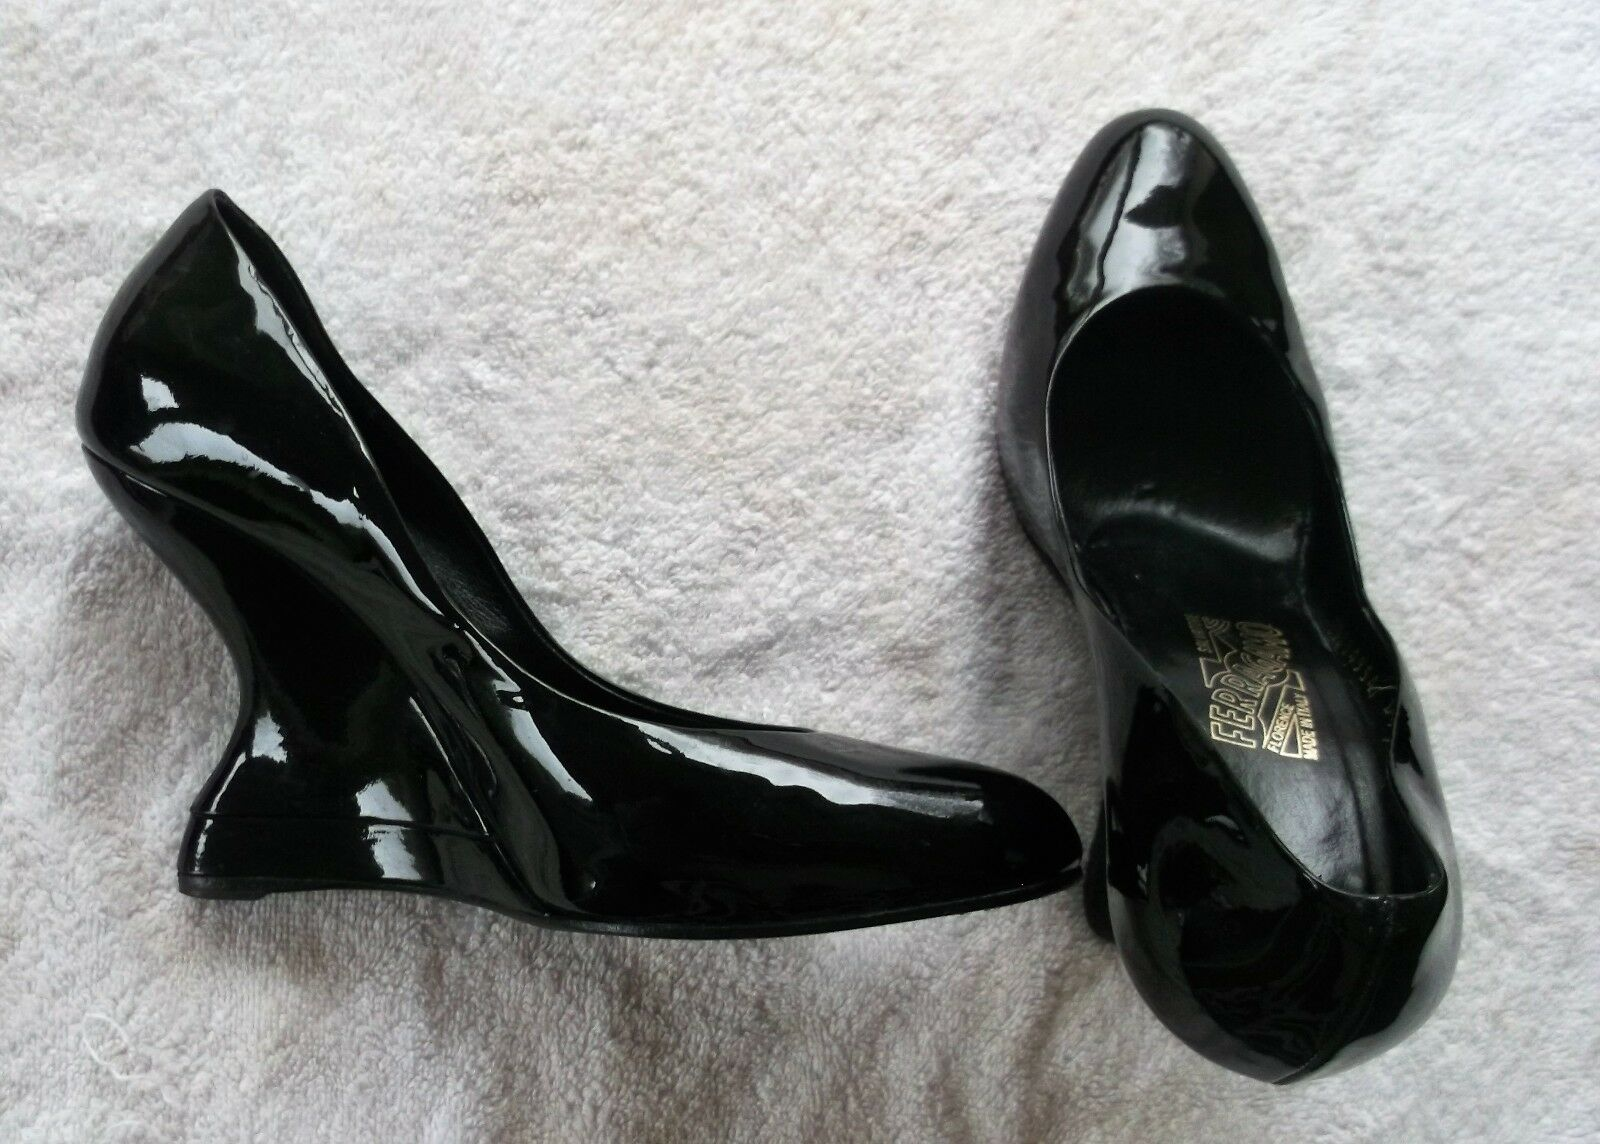 Vintage F F F wedge black patent leather Salvatore Ferragamo shoes size 8.5 651bef